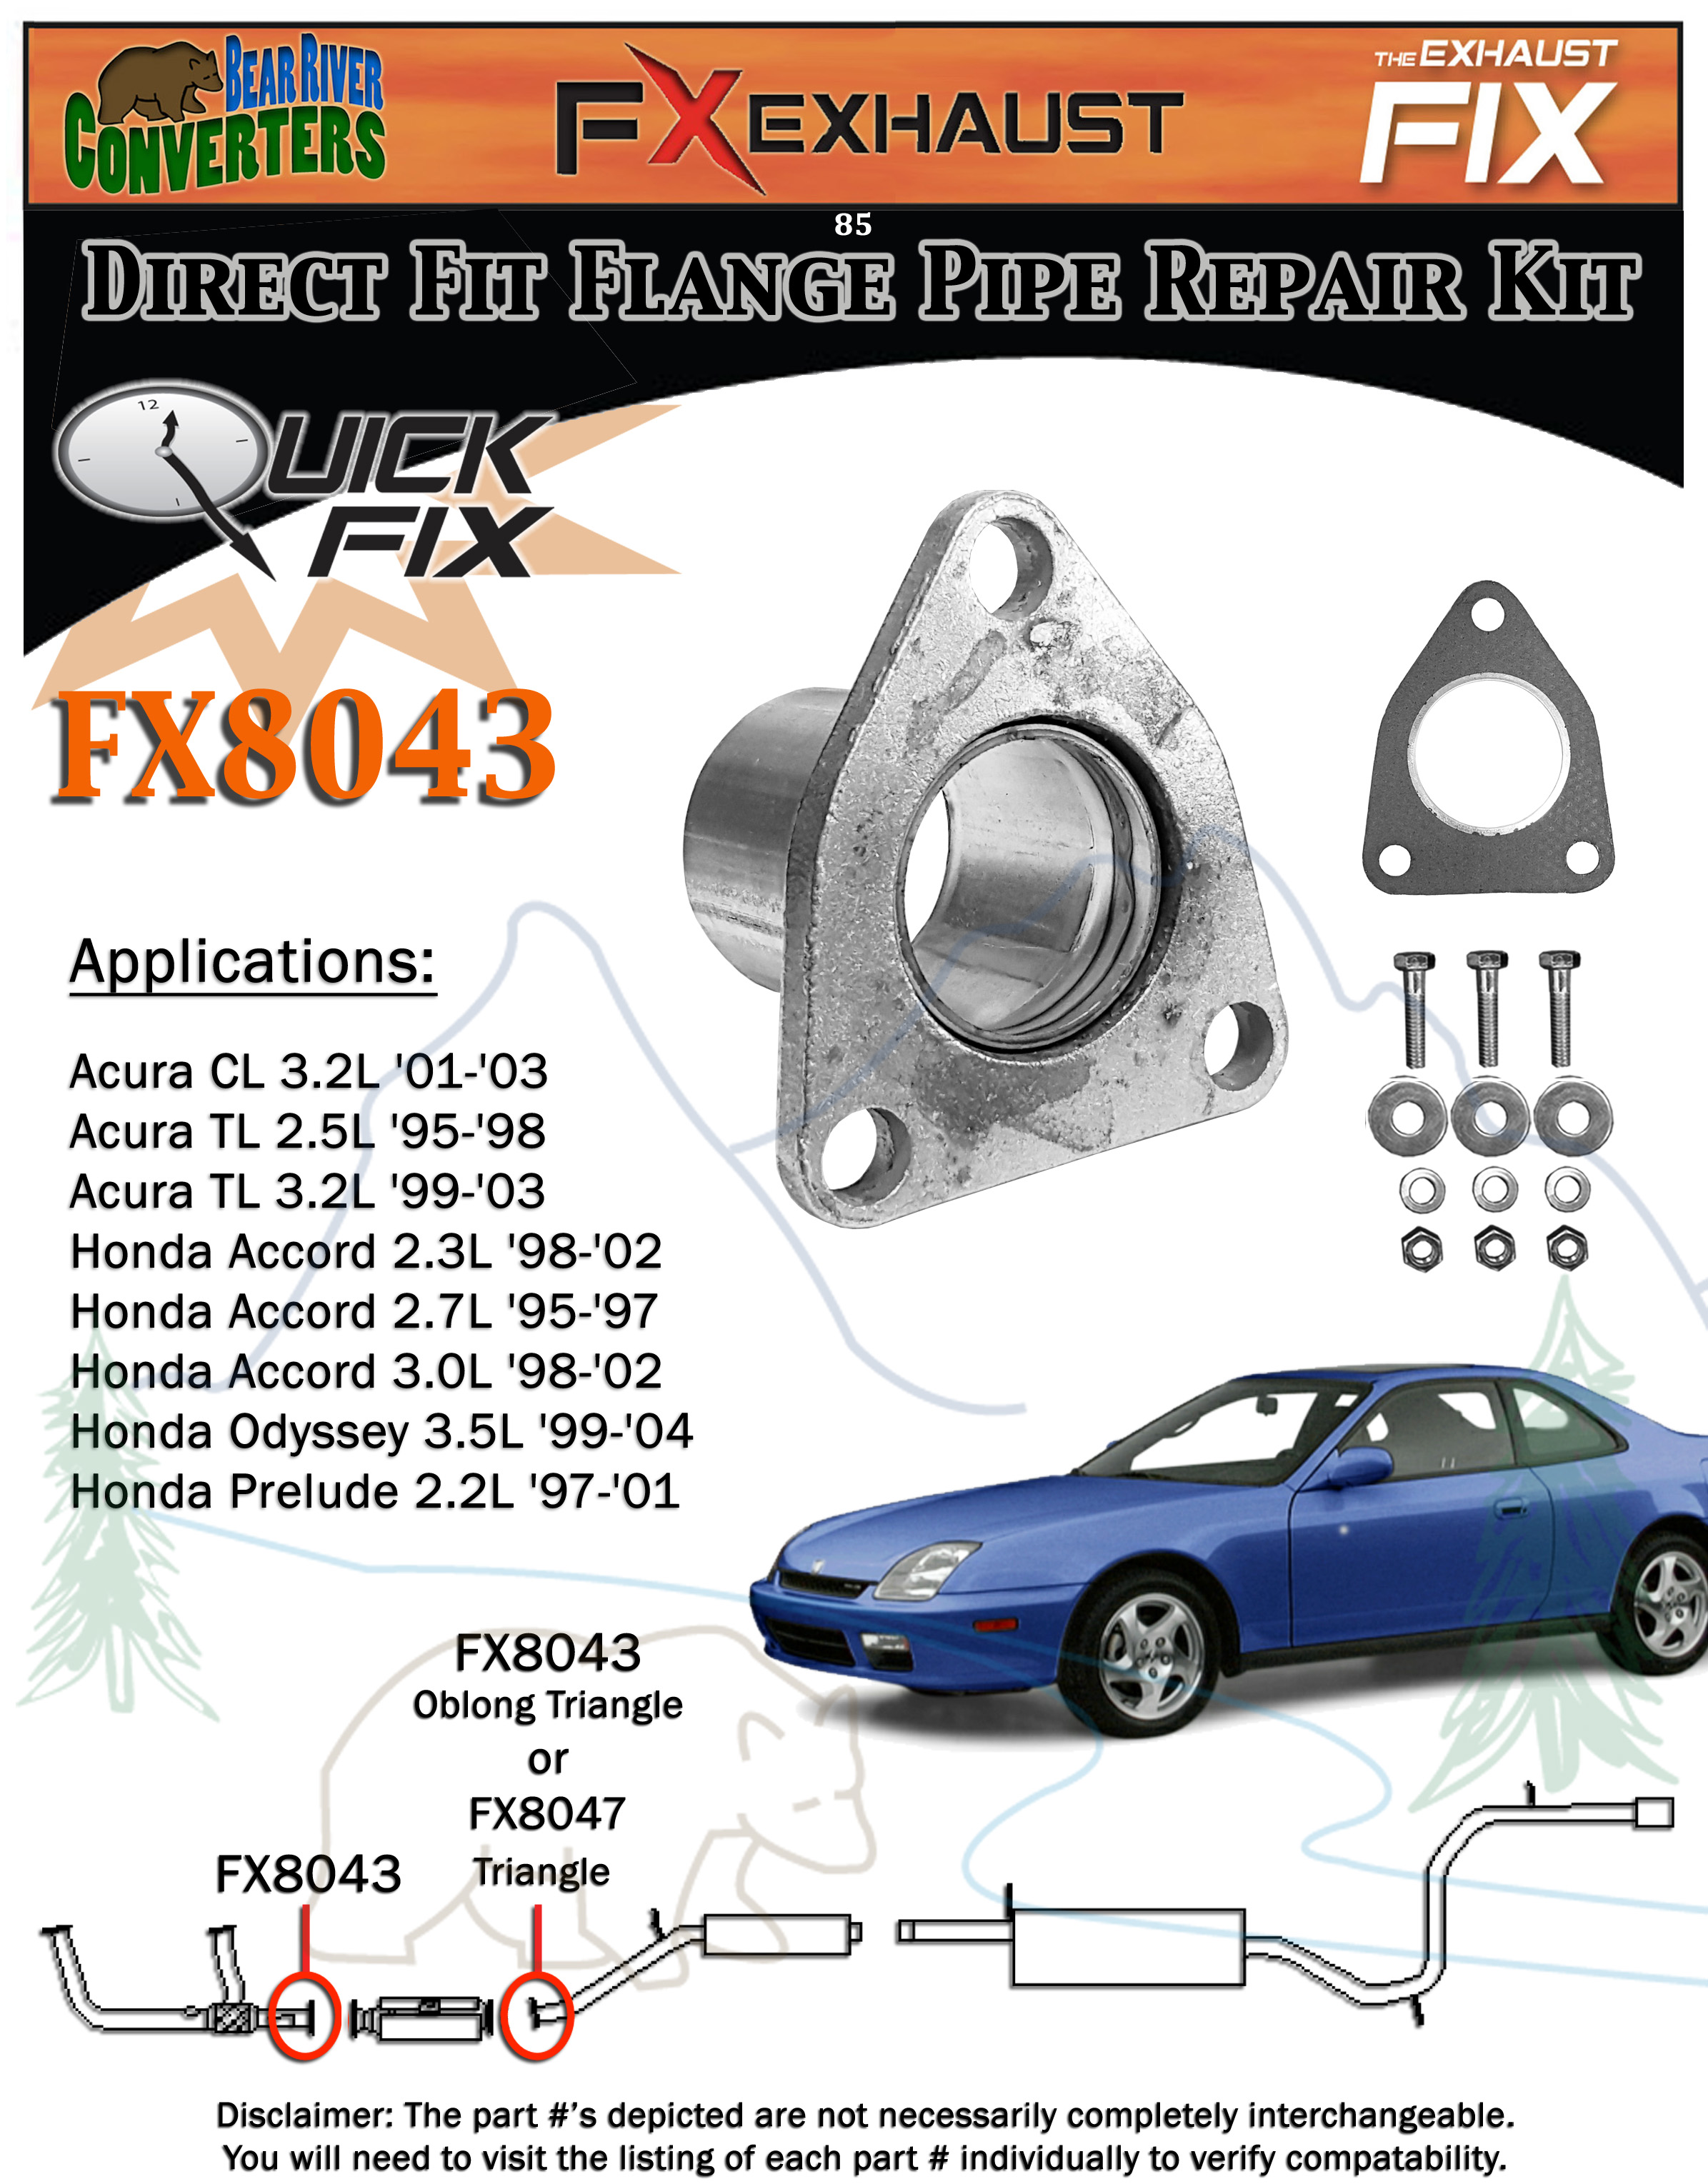 fx8043 2 semi direct fit exhaust converter pipe flange repair kit w rh ebay  com 99 Acura TL Exhaust Pieces Acura TL Stock Exhaust